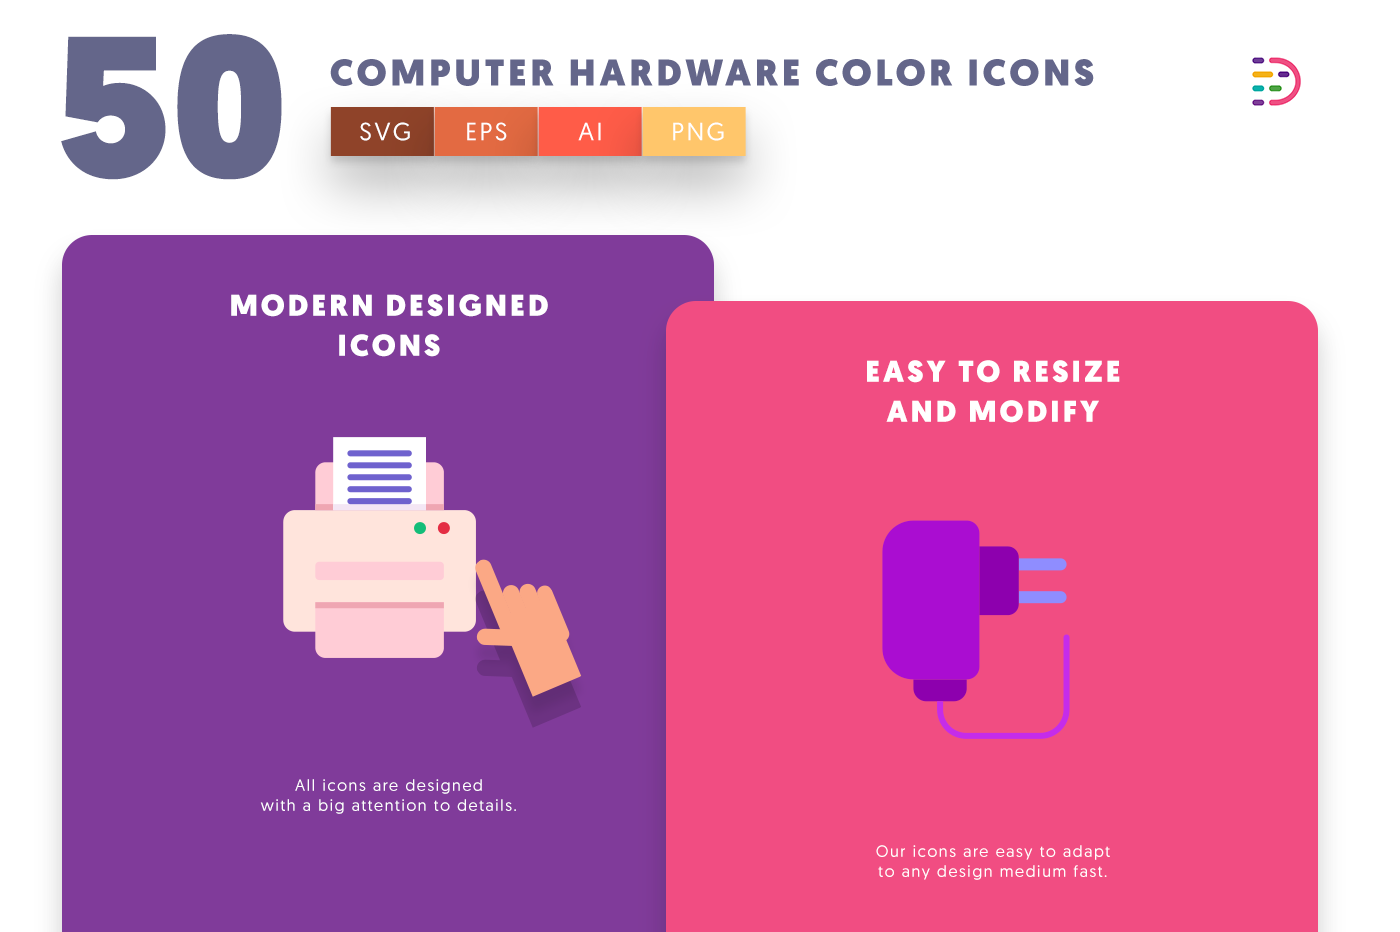 Computer Hardware Color icons png/svg/eps